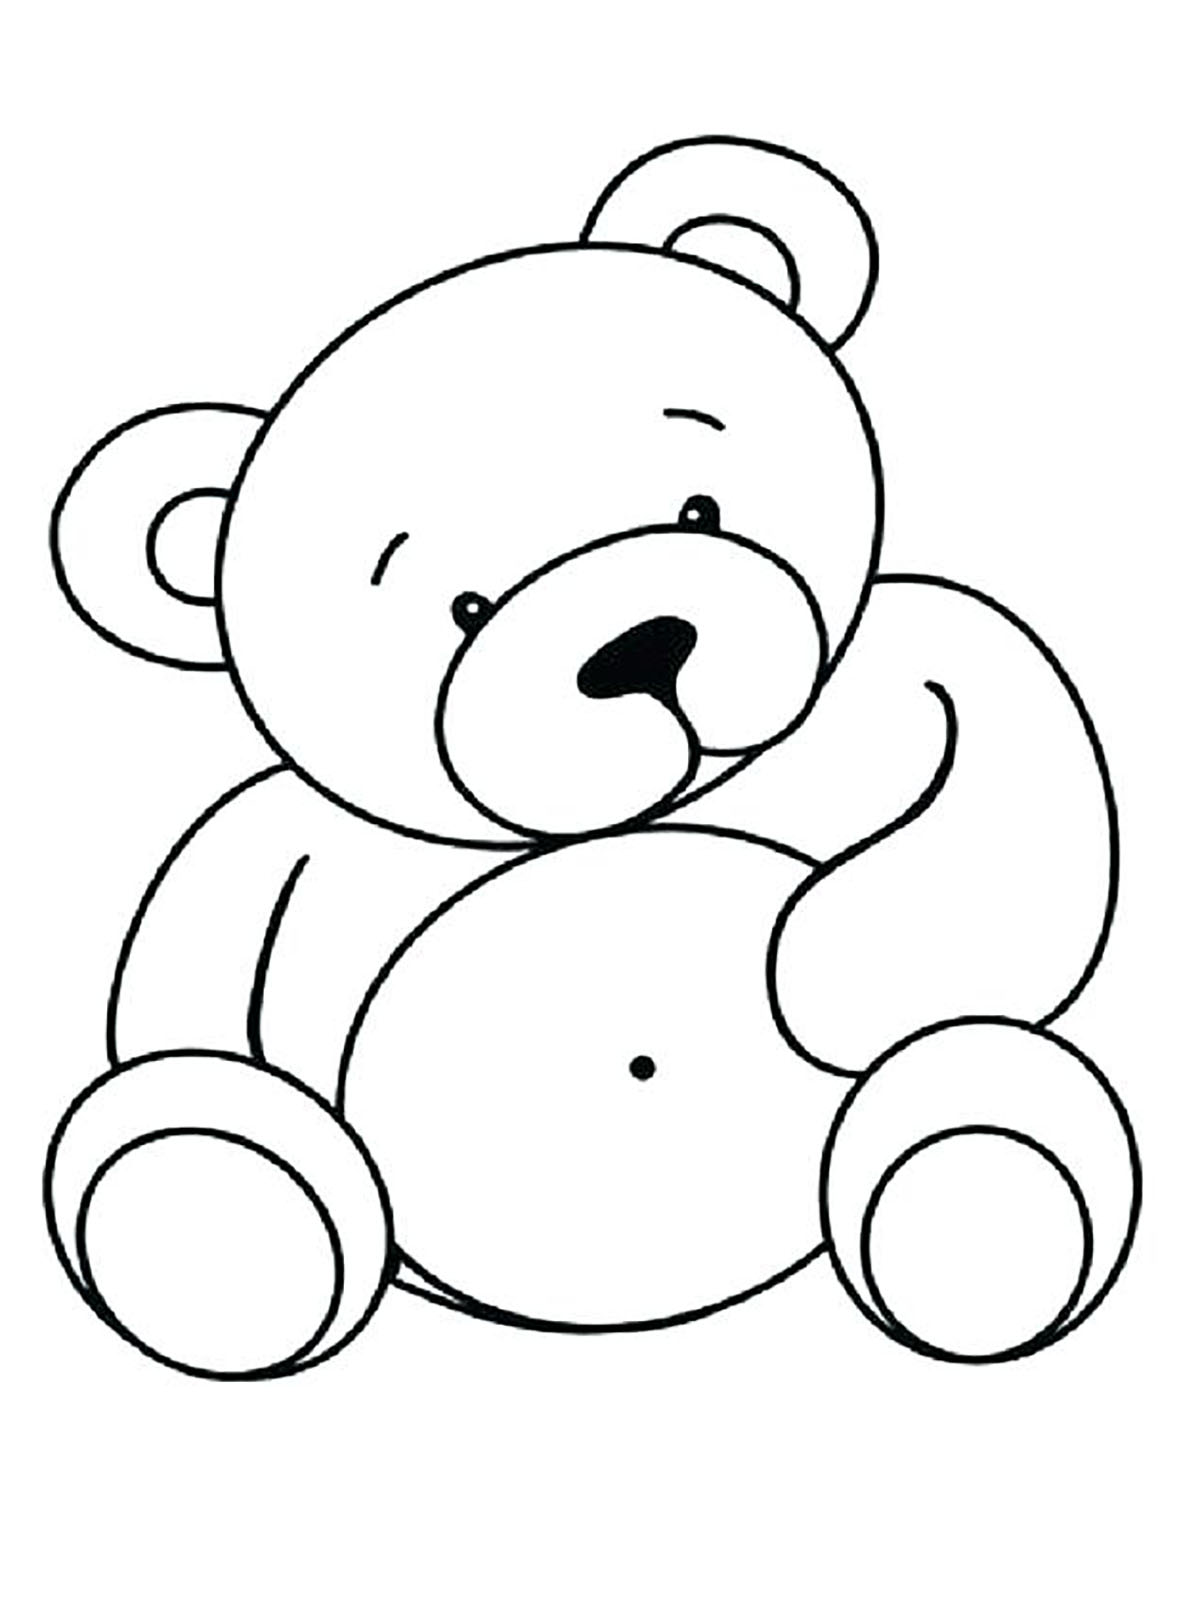 Bears To Print For Free